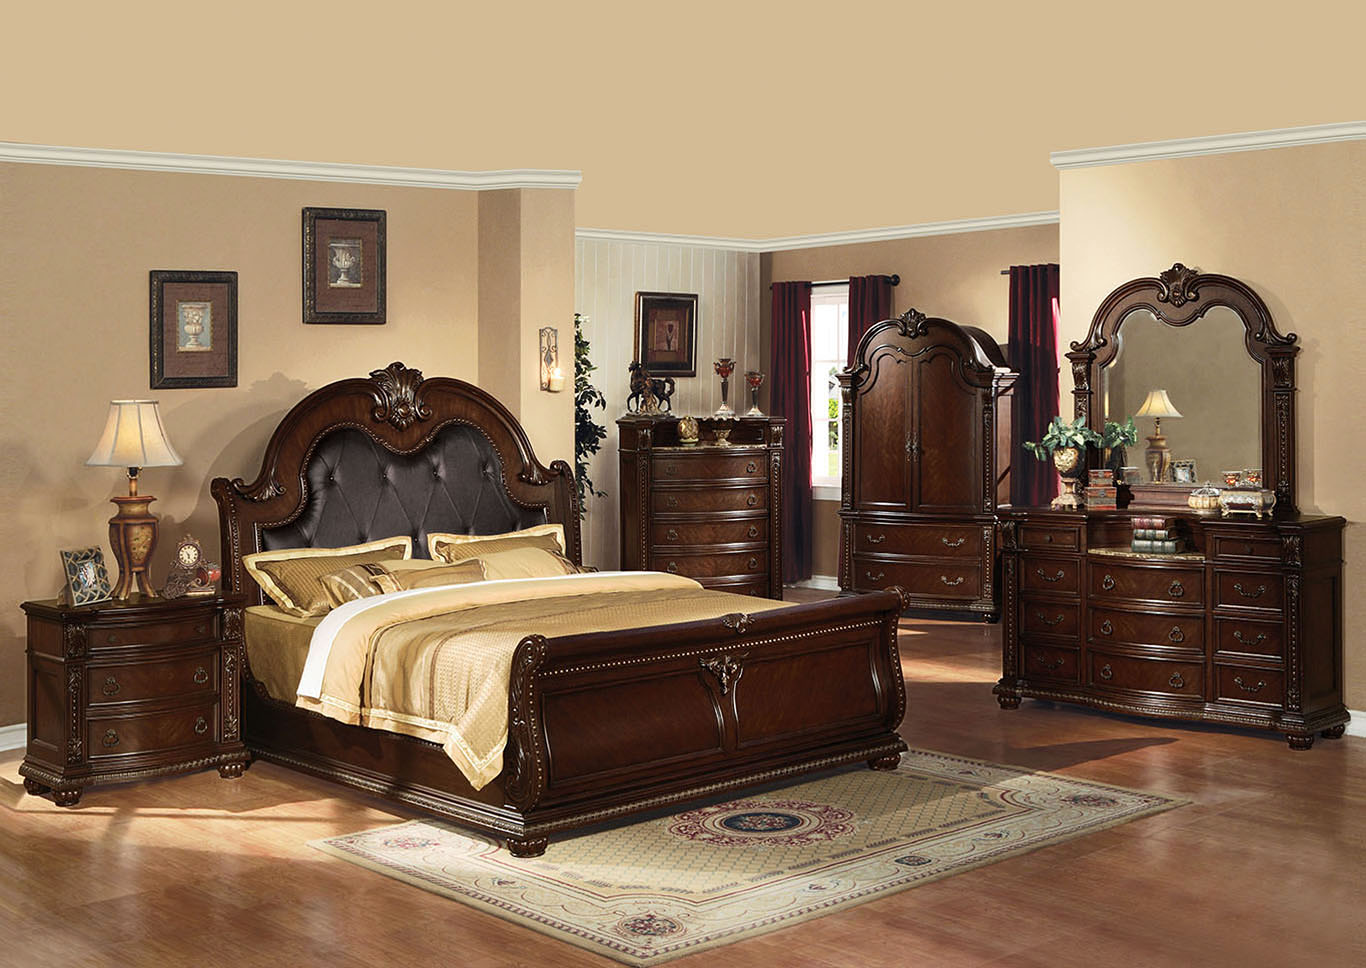 Anondale Espresso/Cherry Queen Upholstered Bed w/Dresser and Mirror,Acme